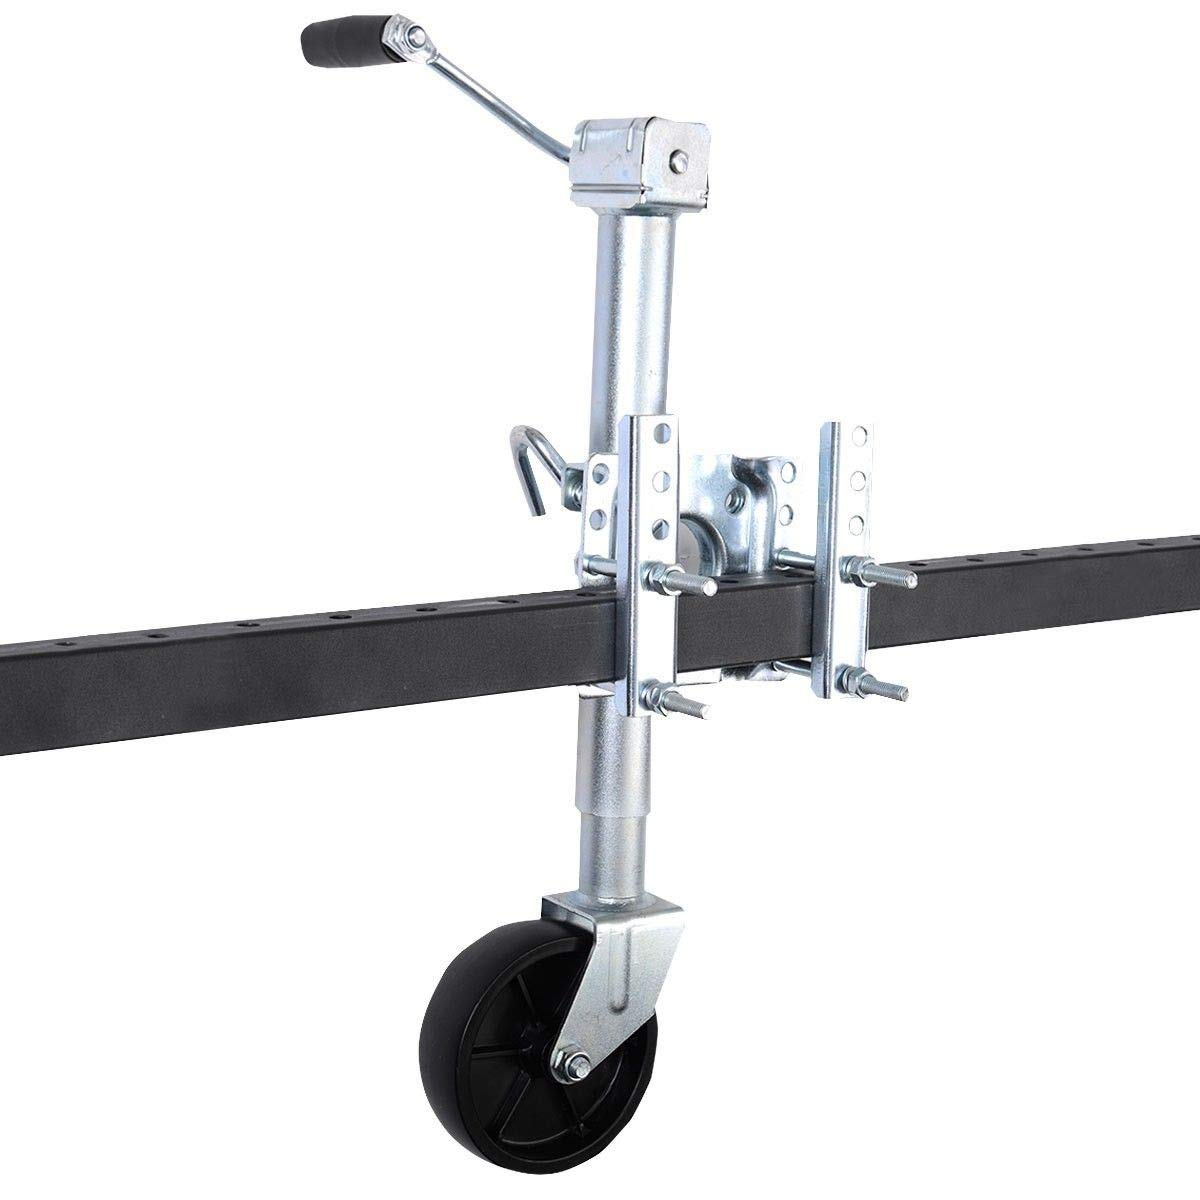 CWY 1000 lbs Swing Away Trailer Jack with Swivel Wheel Only by eight24hours